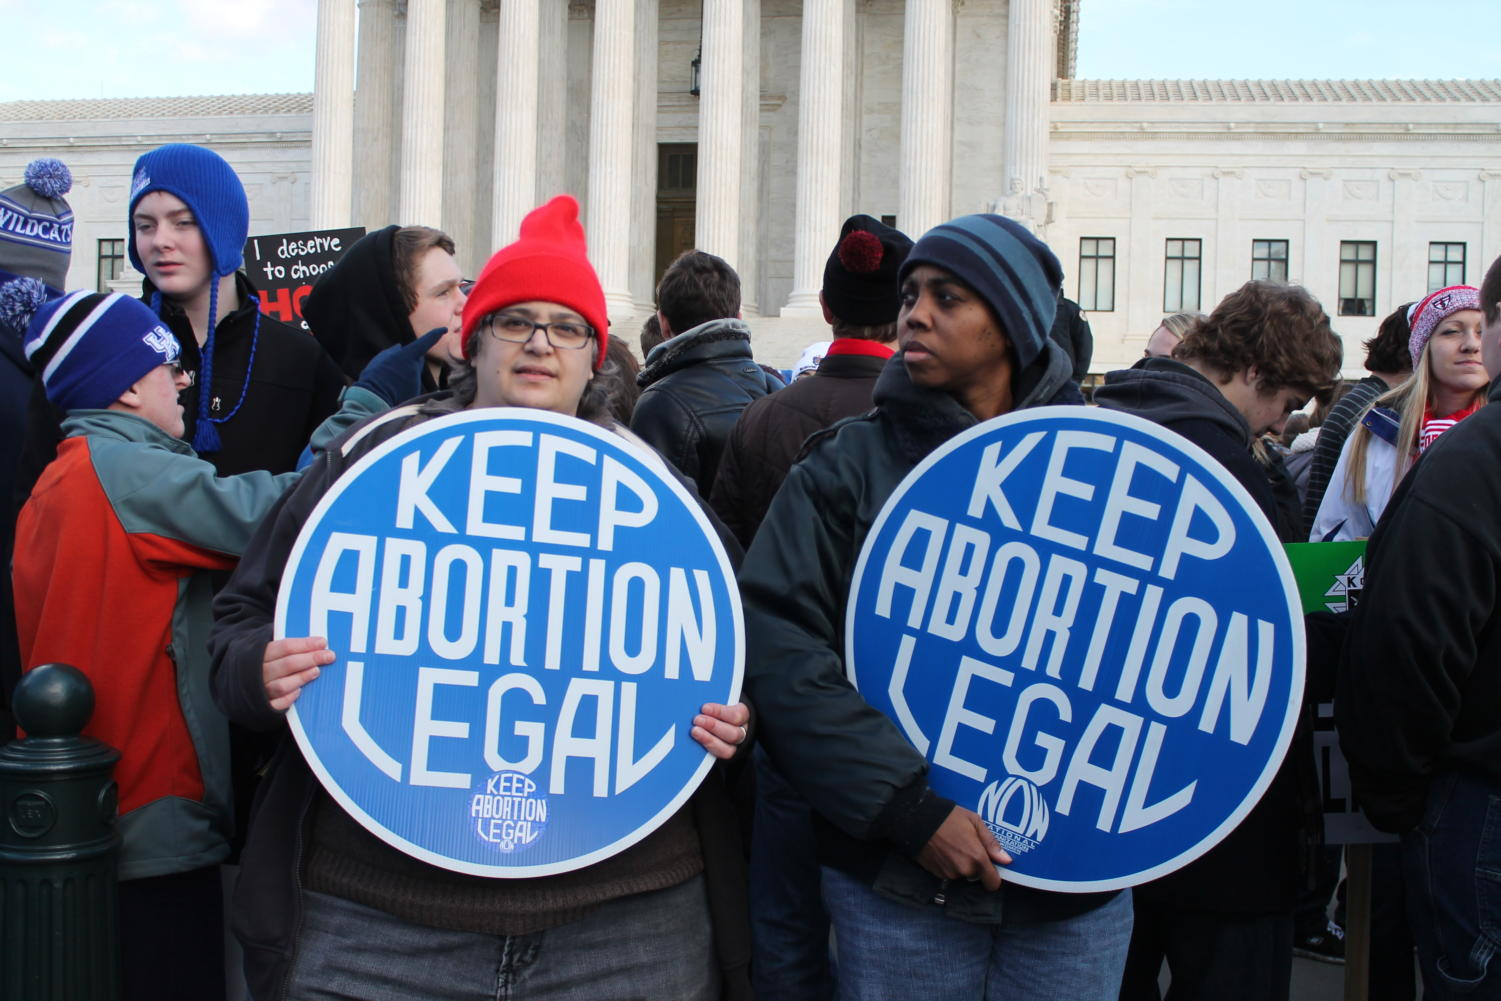 Abortion rights have been up for debate since abortion became a medical practice. The March for Life is a protest of the rights granted after Roe v. Wade, which some pro-choicers attend to advocate the protection of these rights.